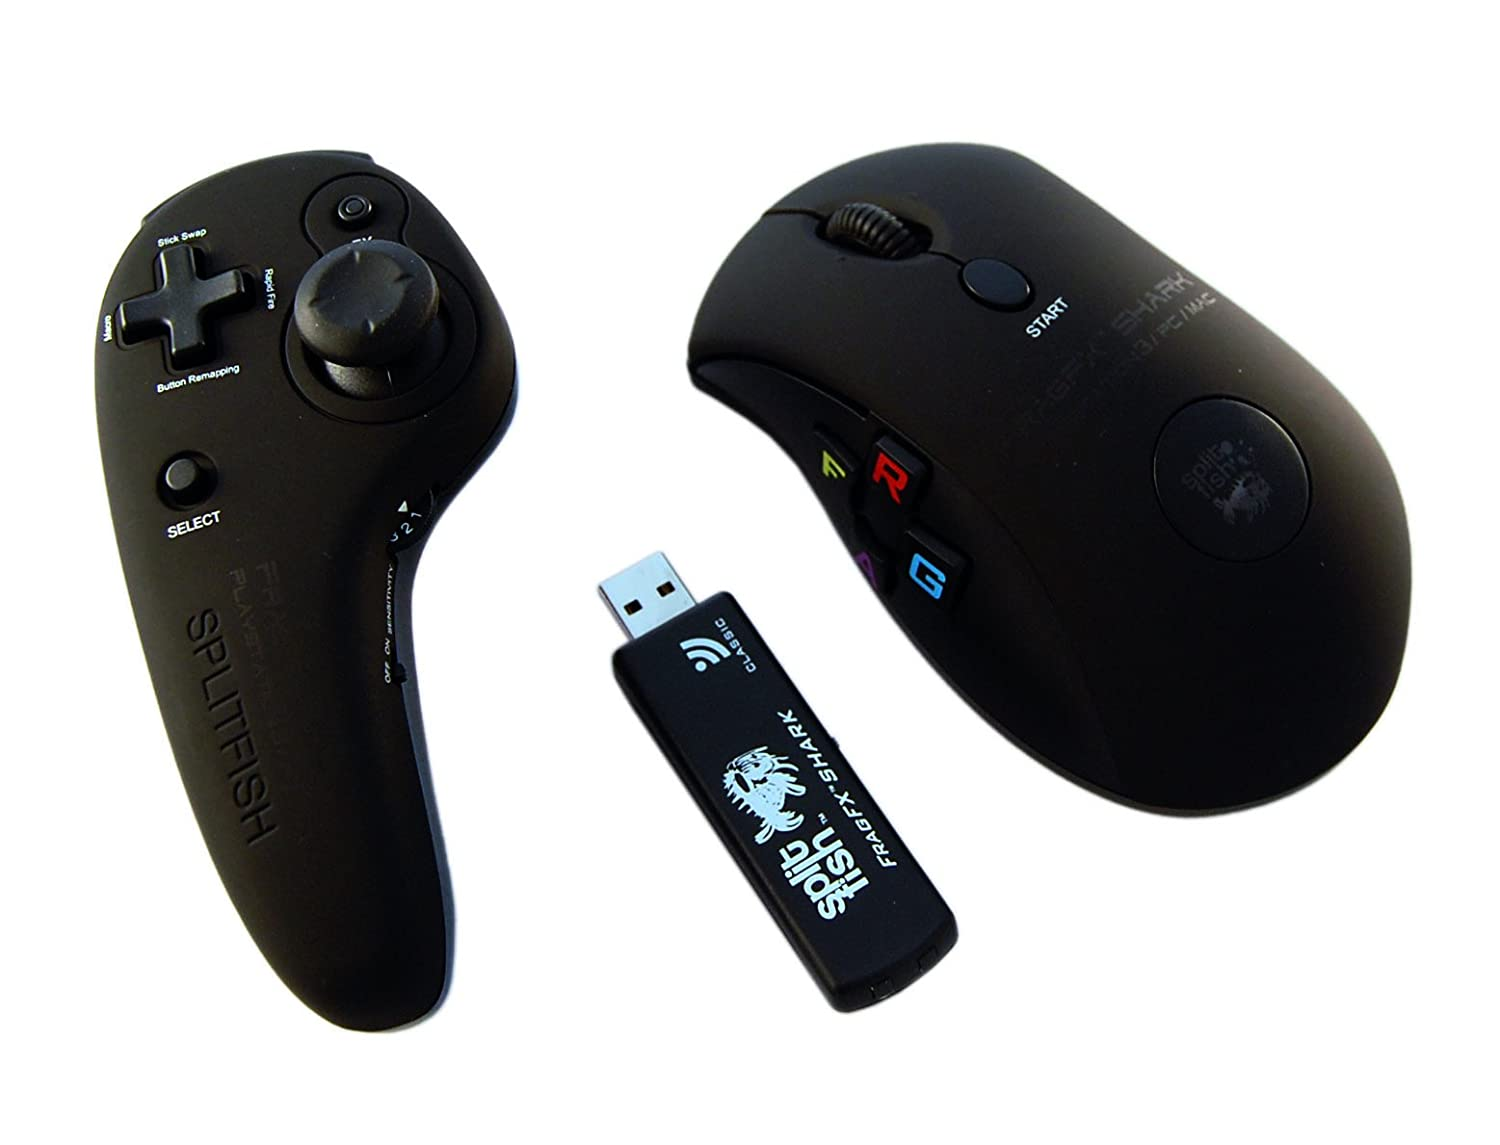 FragFX Shark PS3 CLASSIC (PS3/PC/MAC) - Wireless Controller